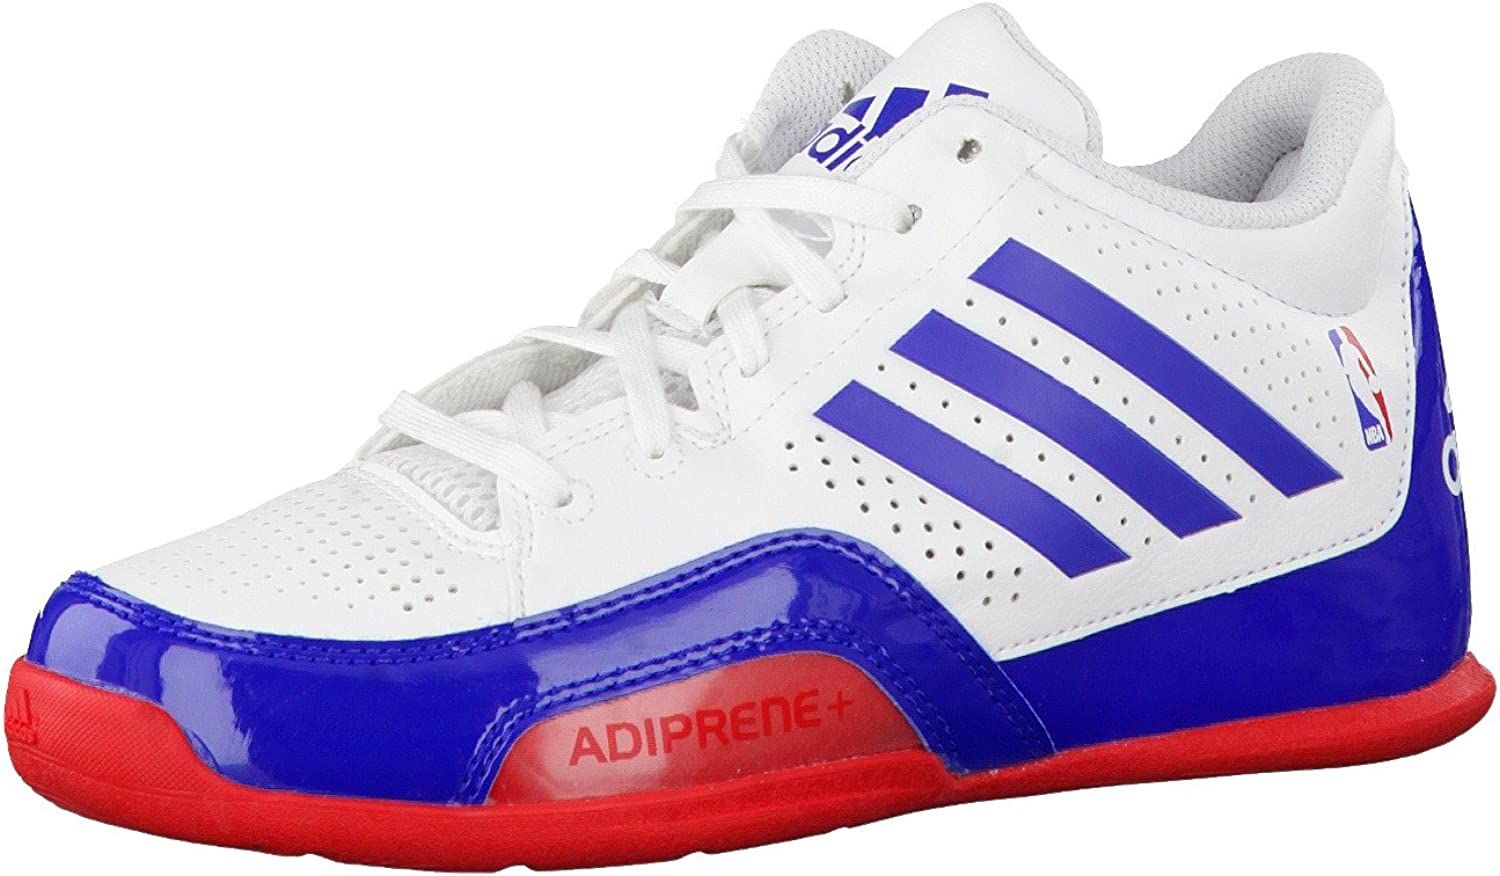 falso Descompostura Cocinando  adidas 3 Series 2015 NBA K - Zapatillas para niño, Color Blanco/Azul/Rojo,  Talla 38: Amazon.es: Zapatos y complementos